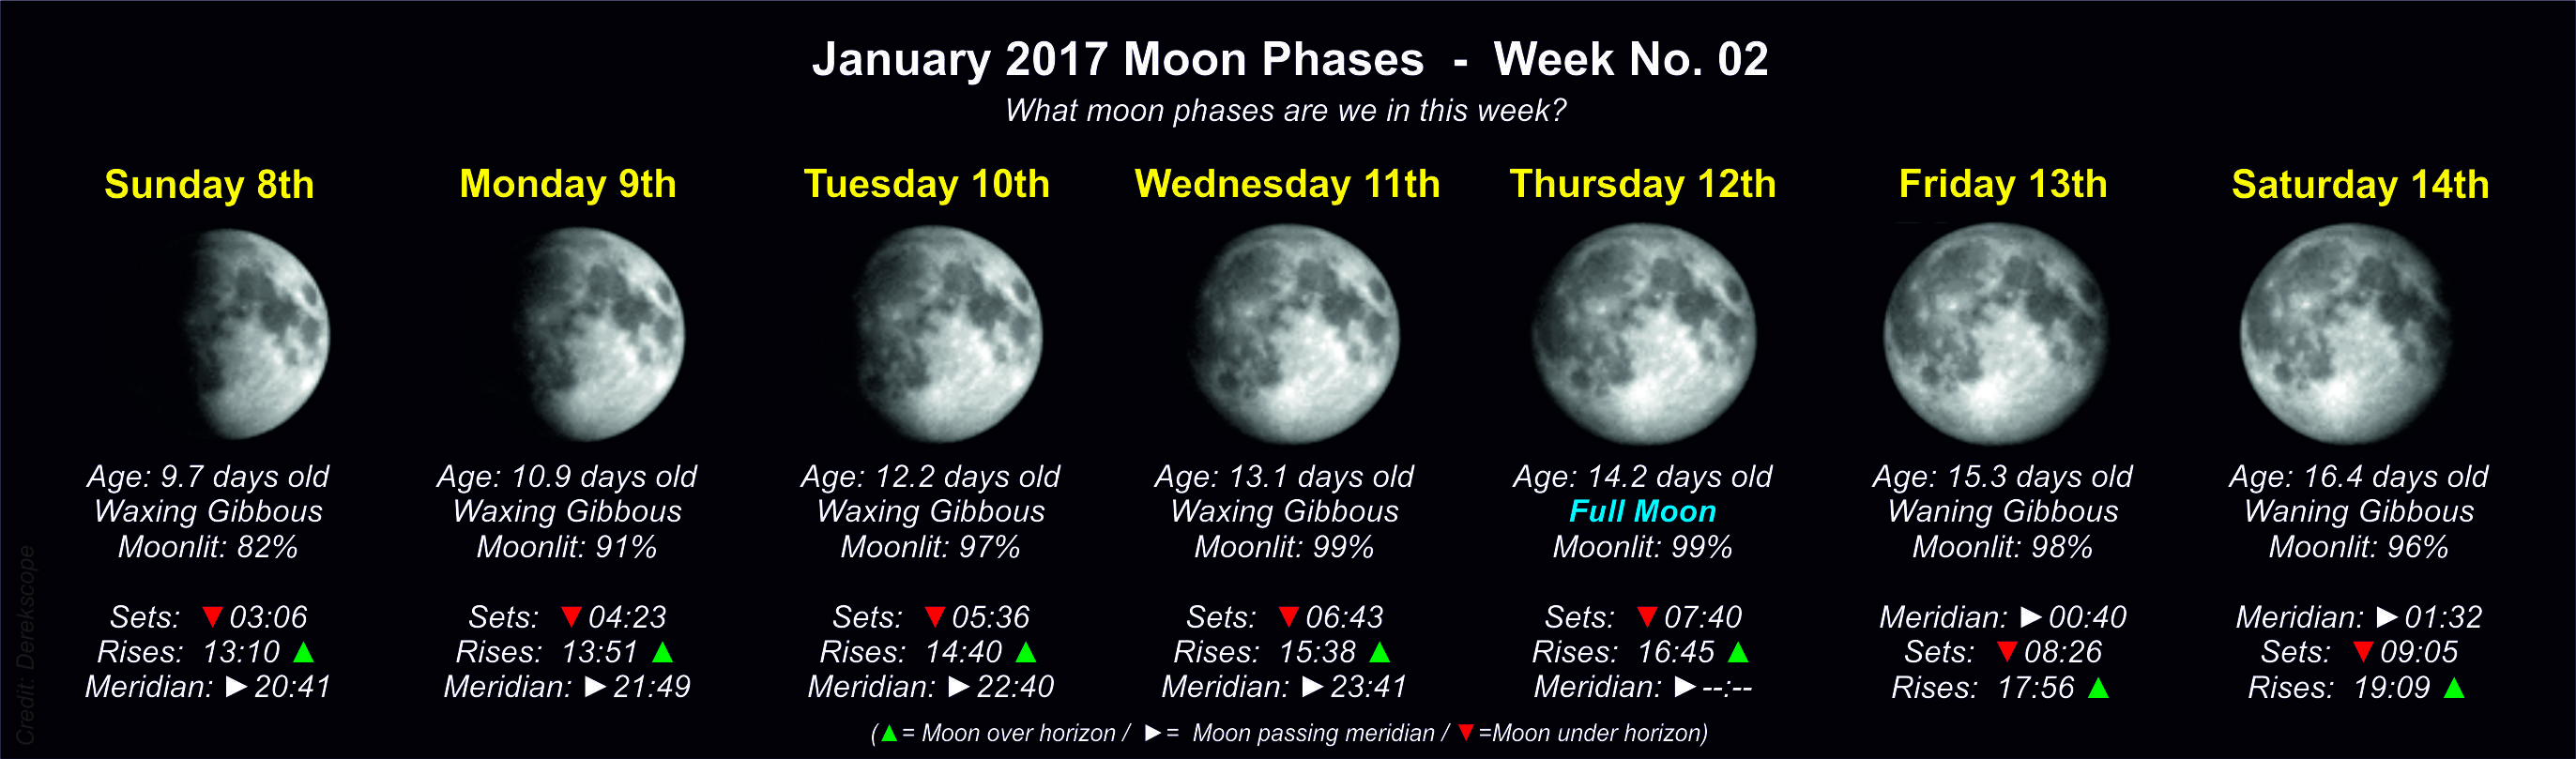 Full moon calendar 2017 (for different time zones)